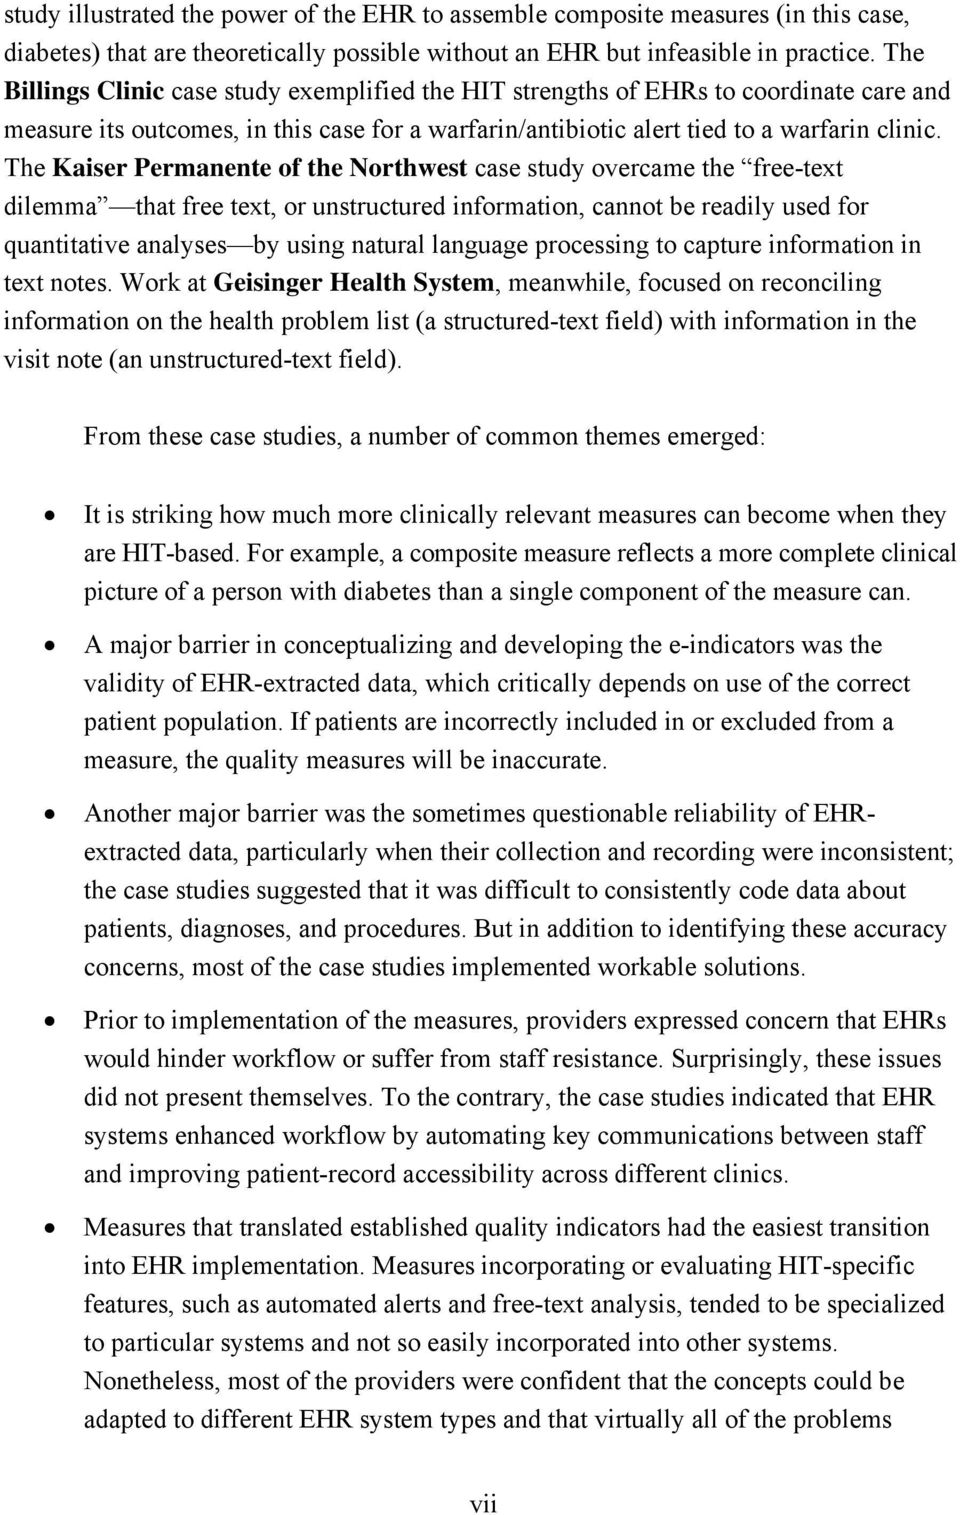 The Kaiser Permanente of the Northwest case study overcame the free-text dilemma that free text, or unstructured information, cannot be readily used for quantitative analyses by using natural